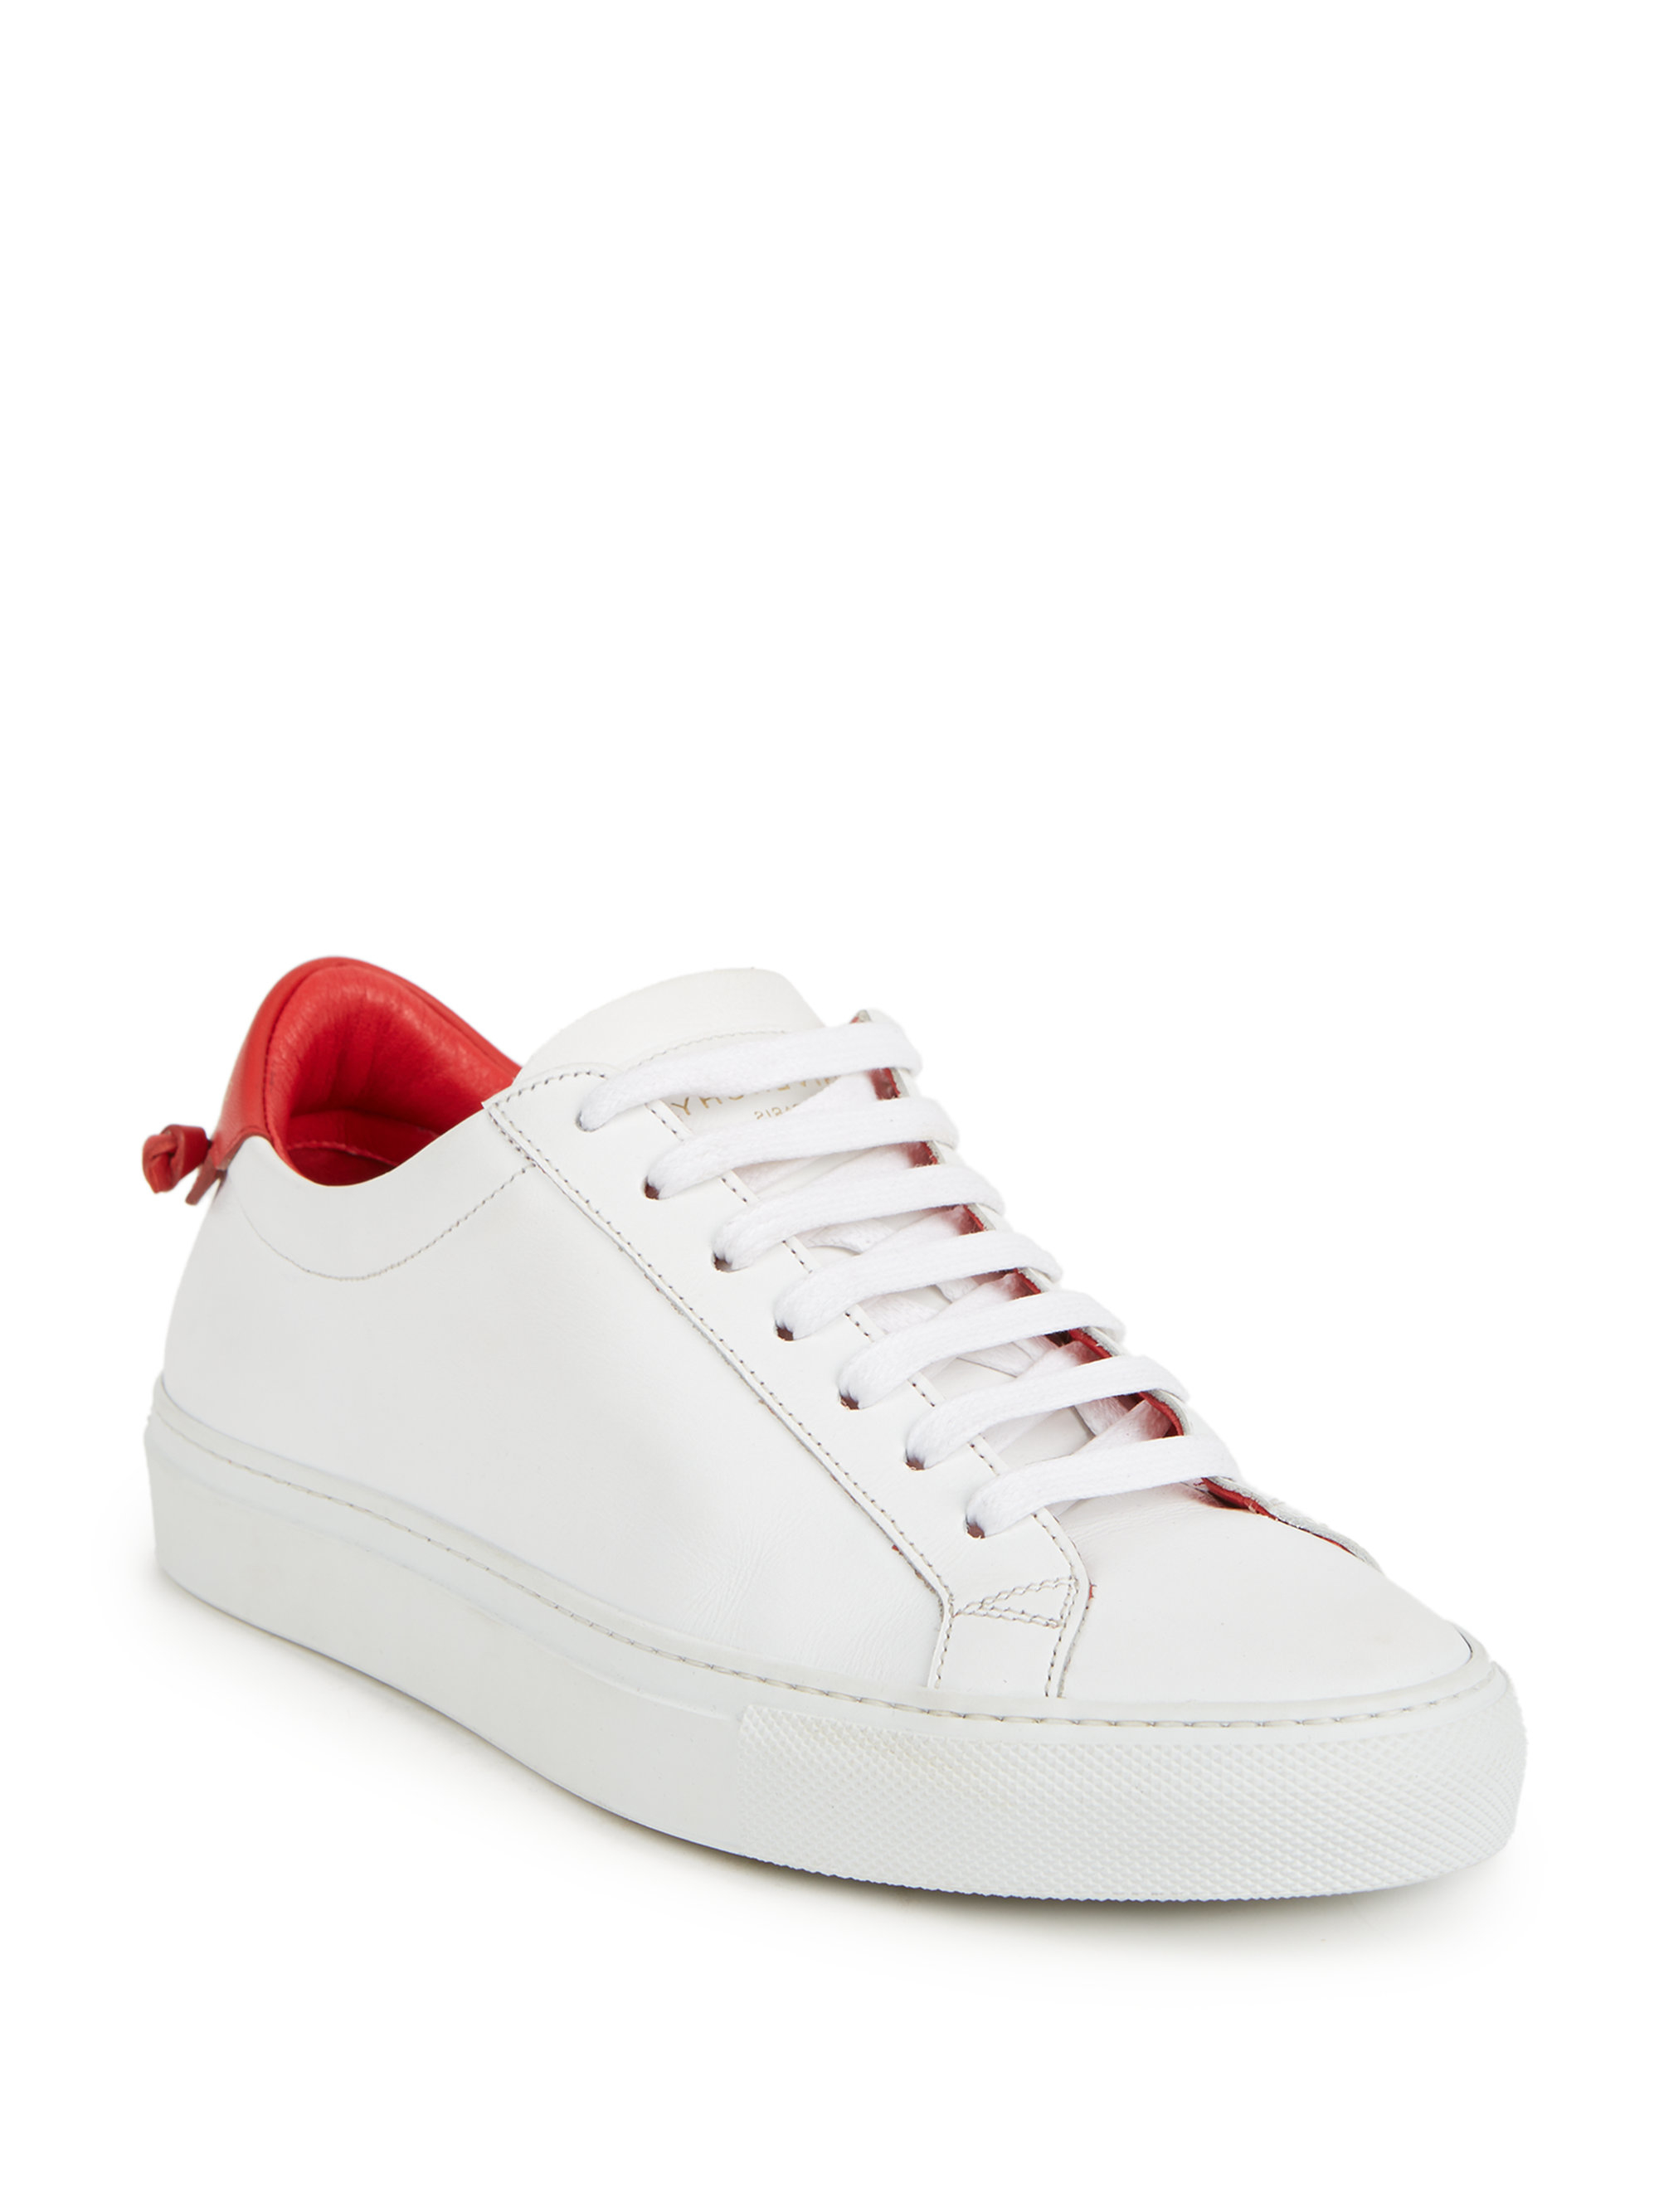 Givenchy White Urban Knots Sneakers In Pink Save 60 Lyst